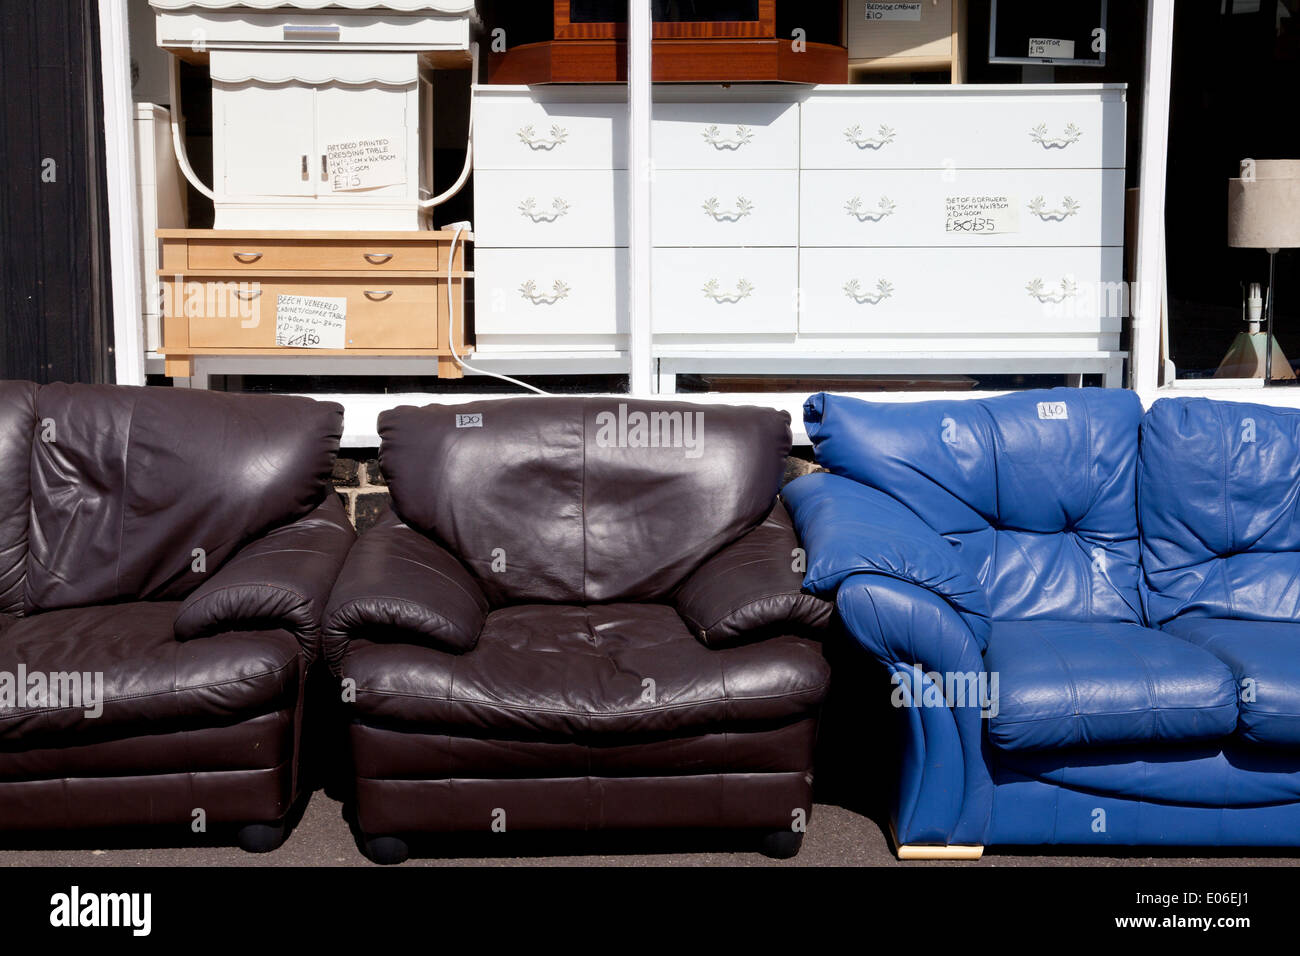 Outside Sofas High Resolution Stock Photography And Images Alamy